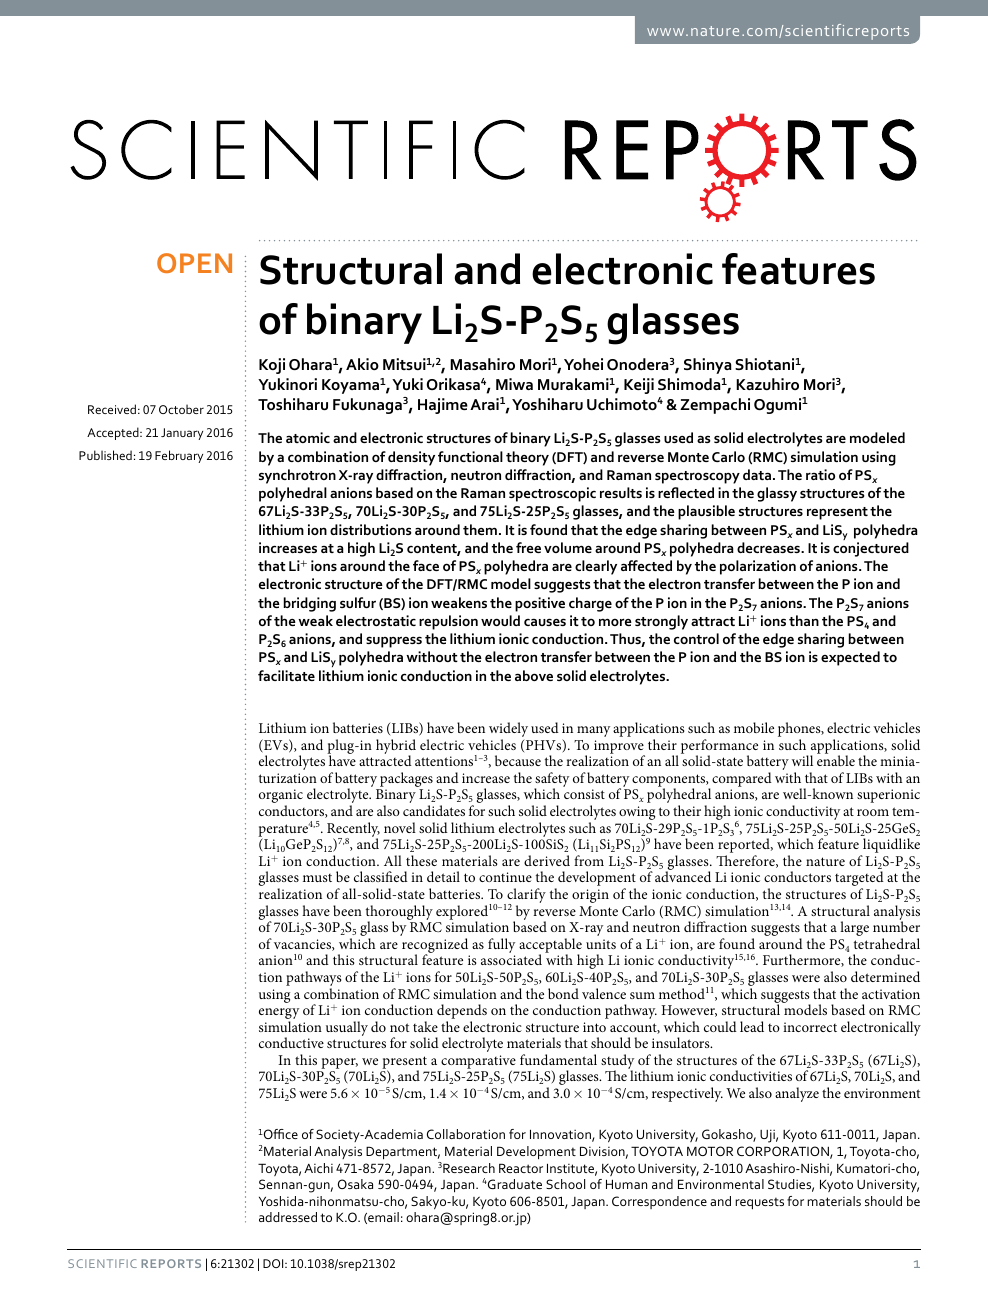 Structural and electronic features of binary Li2S-P2S5